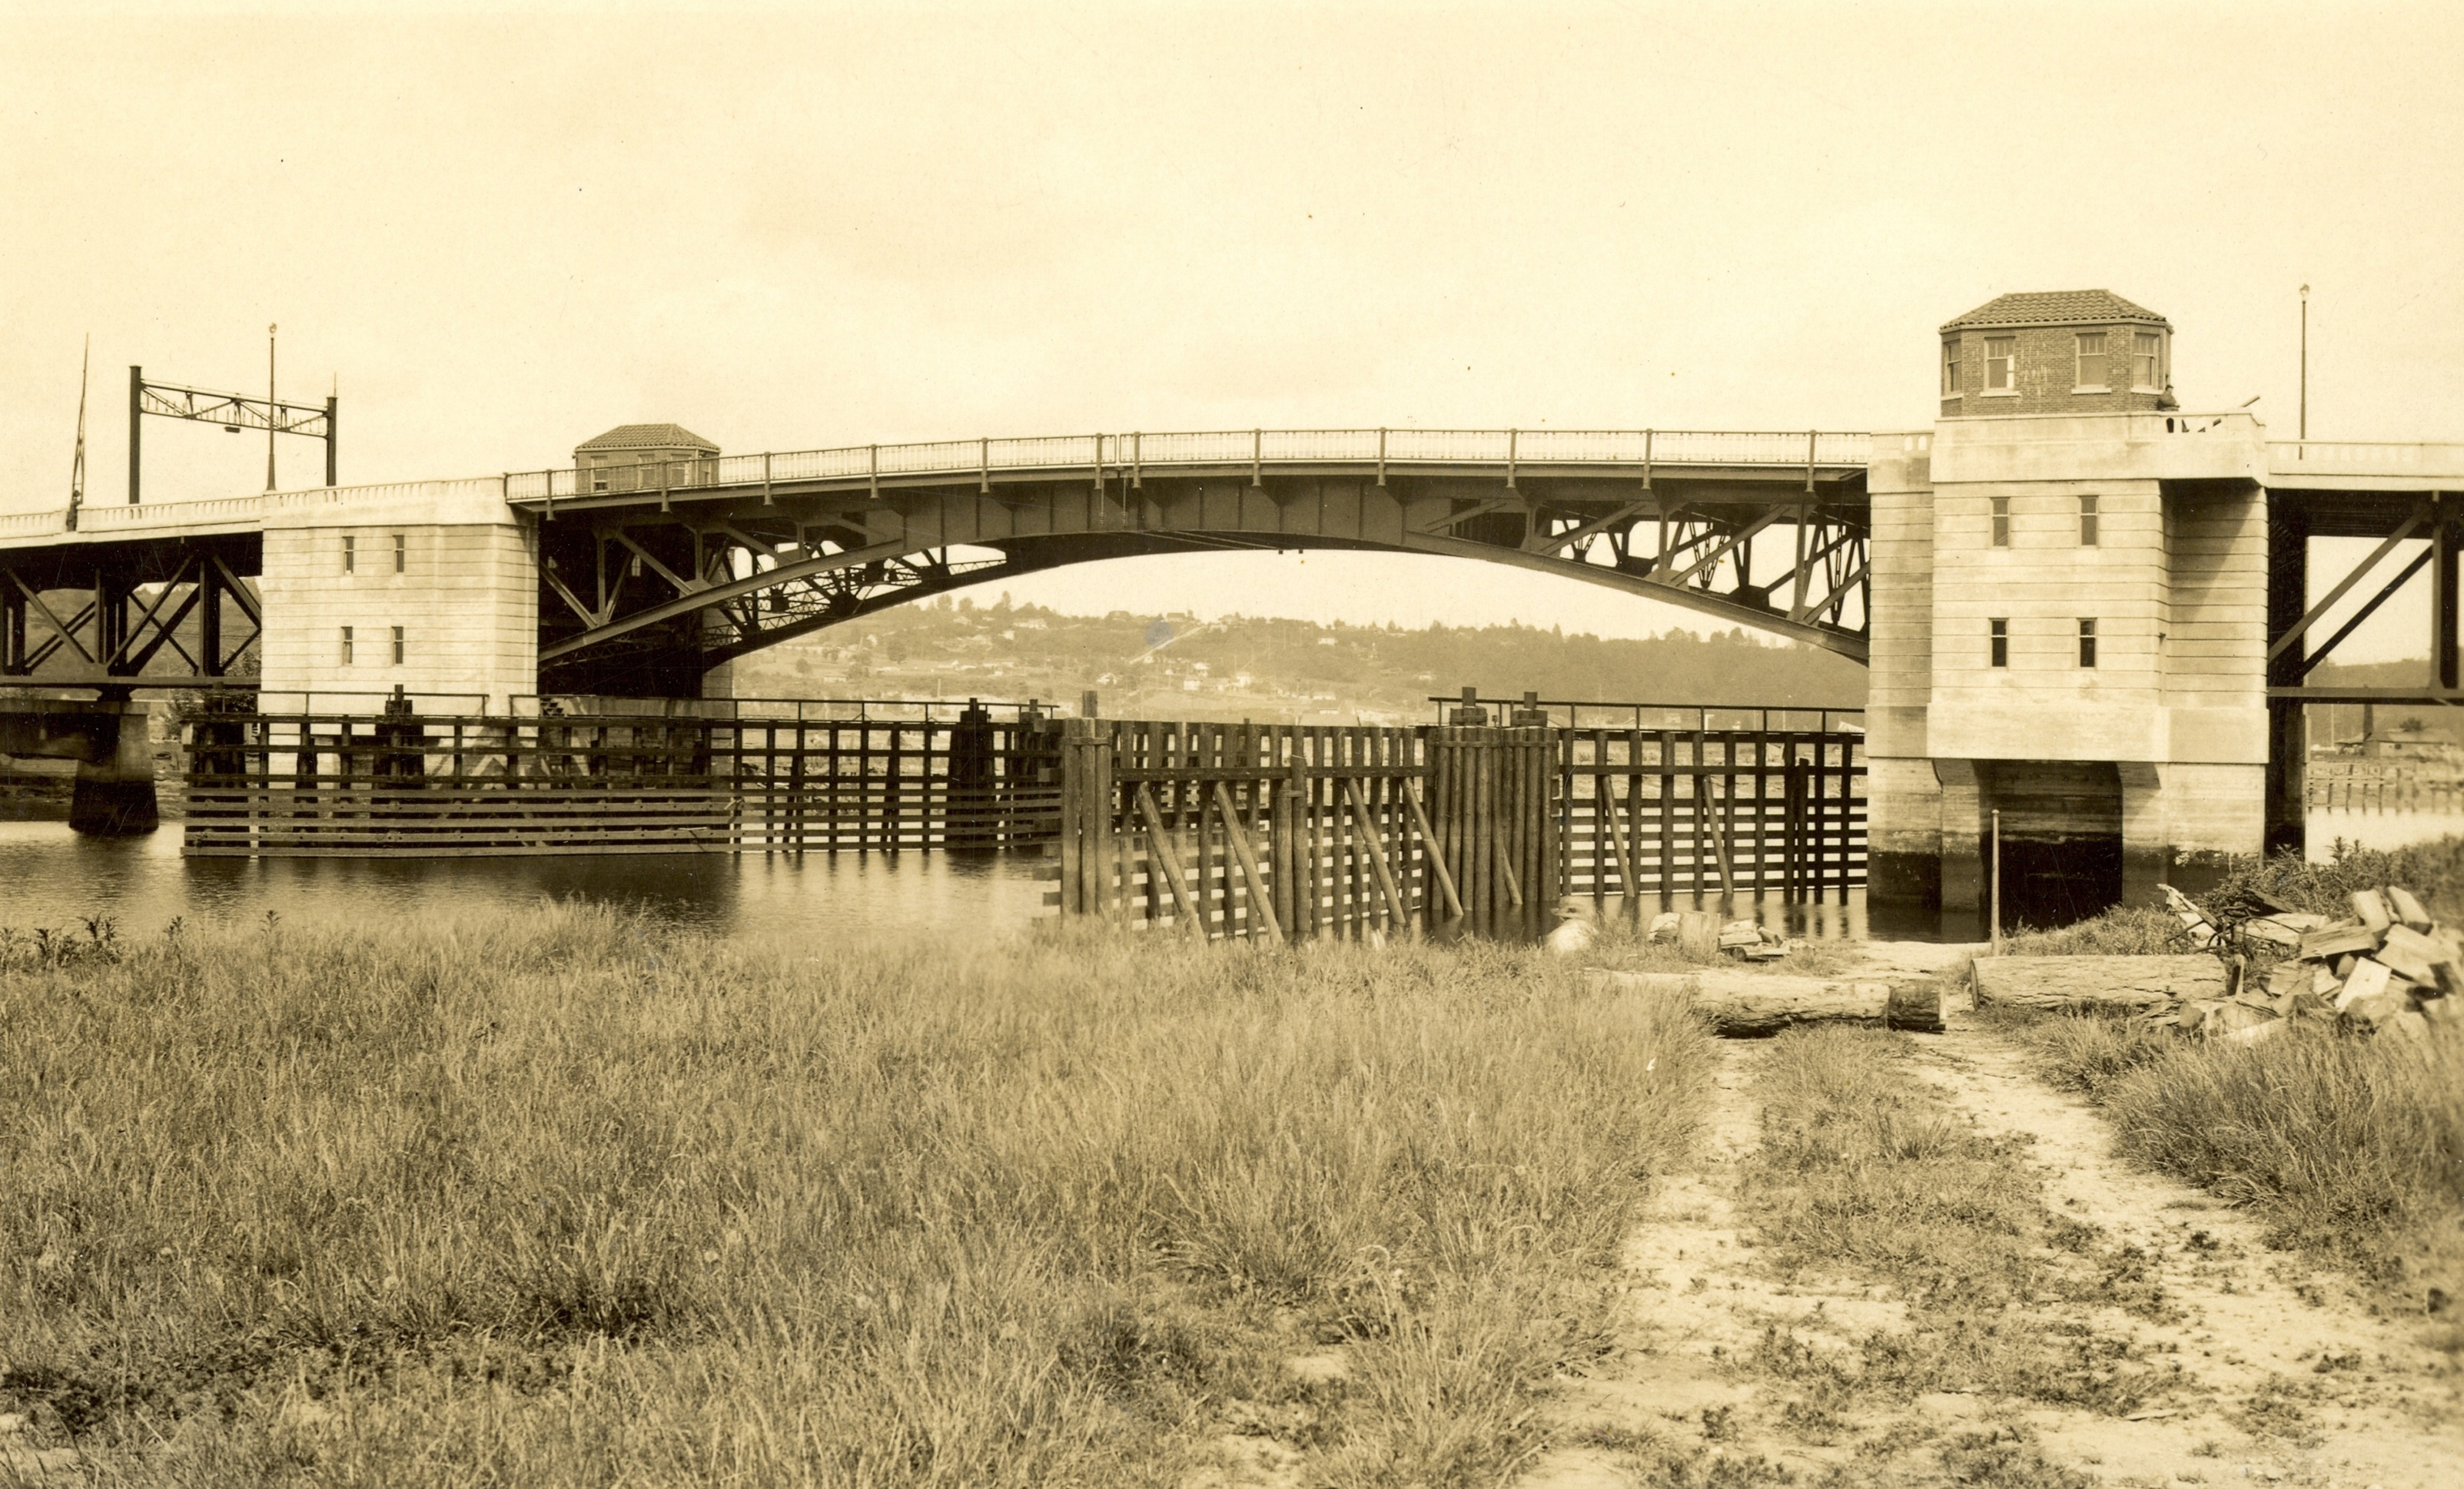 Bridge_no_3179__June_6_1932__TPBlum